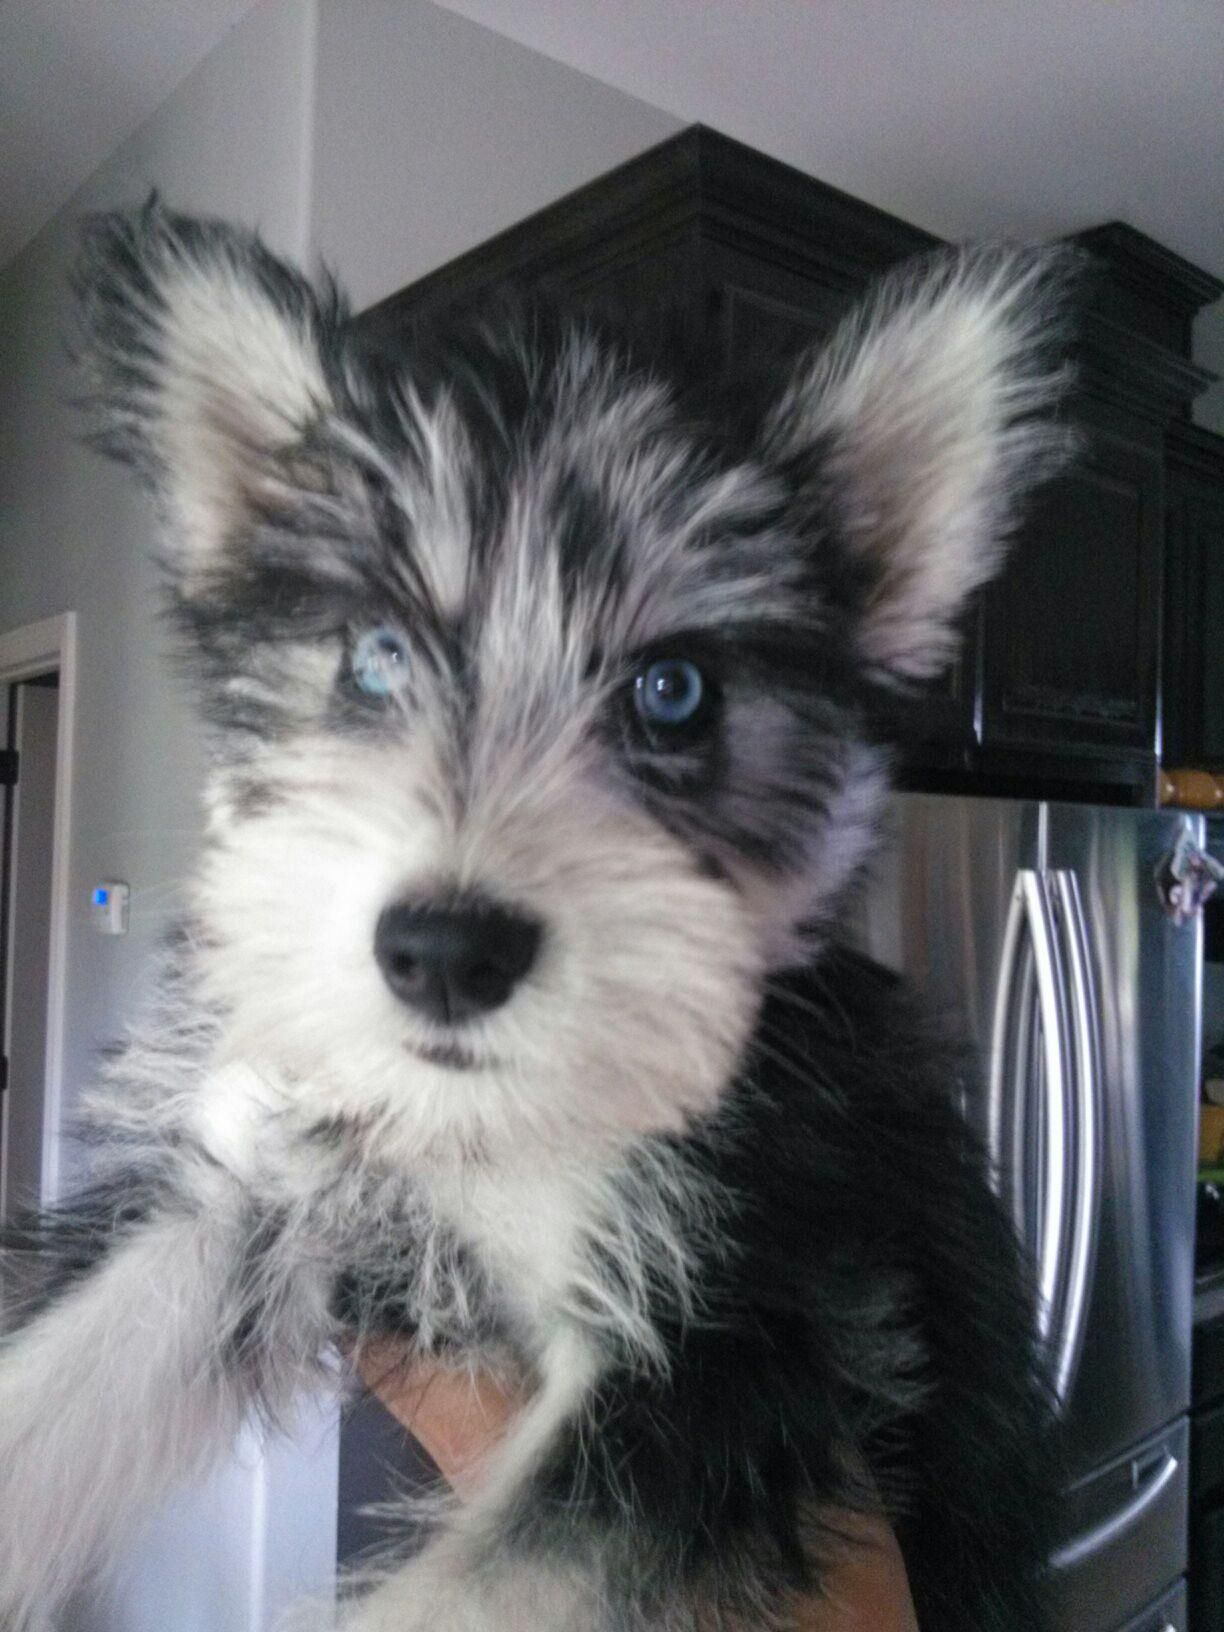 Husky And Schnauzer Mix Too Cute For Words To Describe